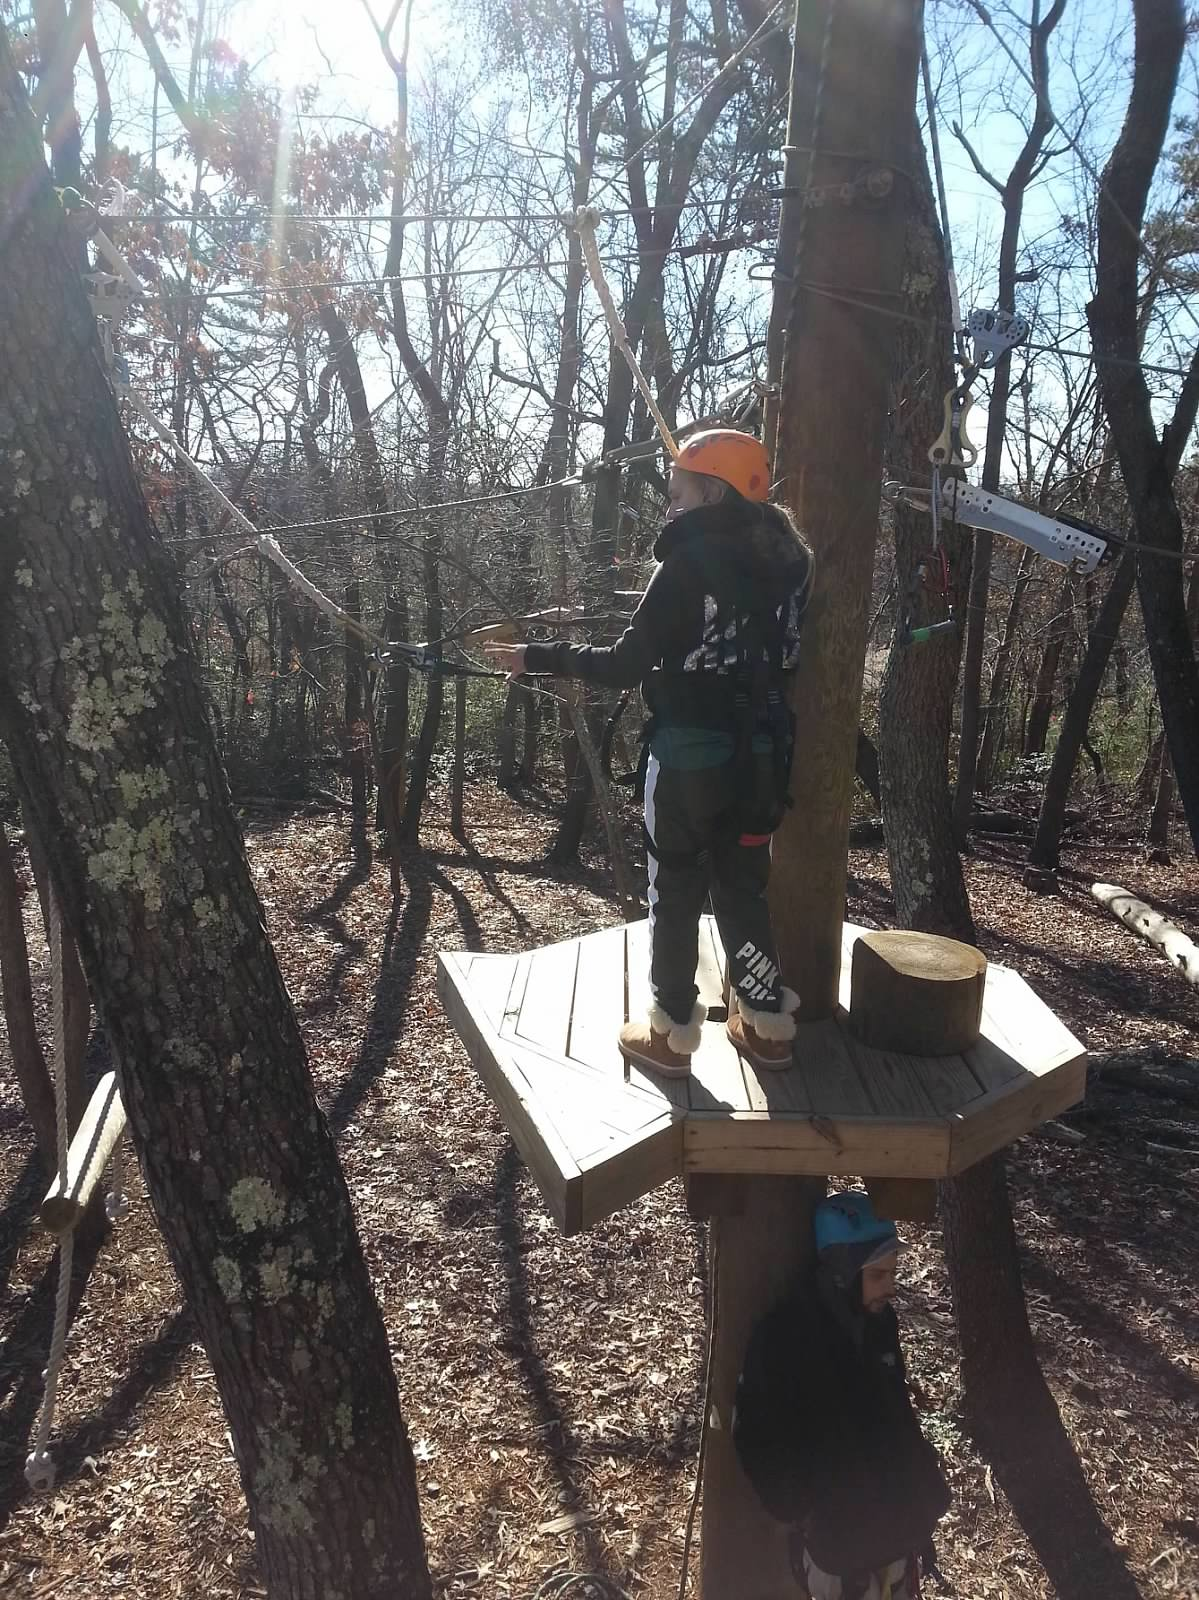 Student participates in ropes course